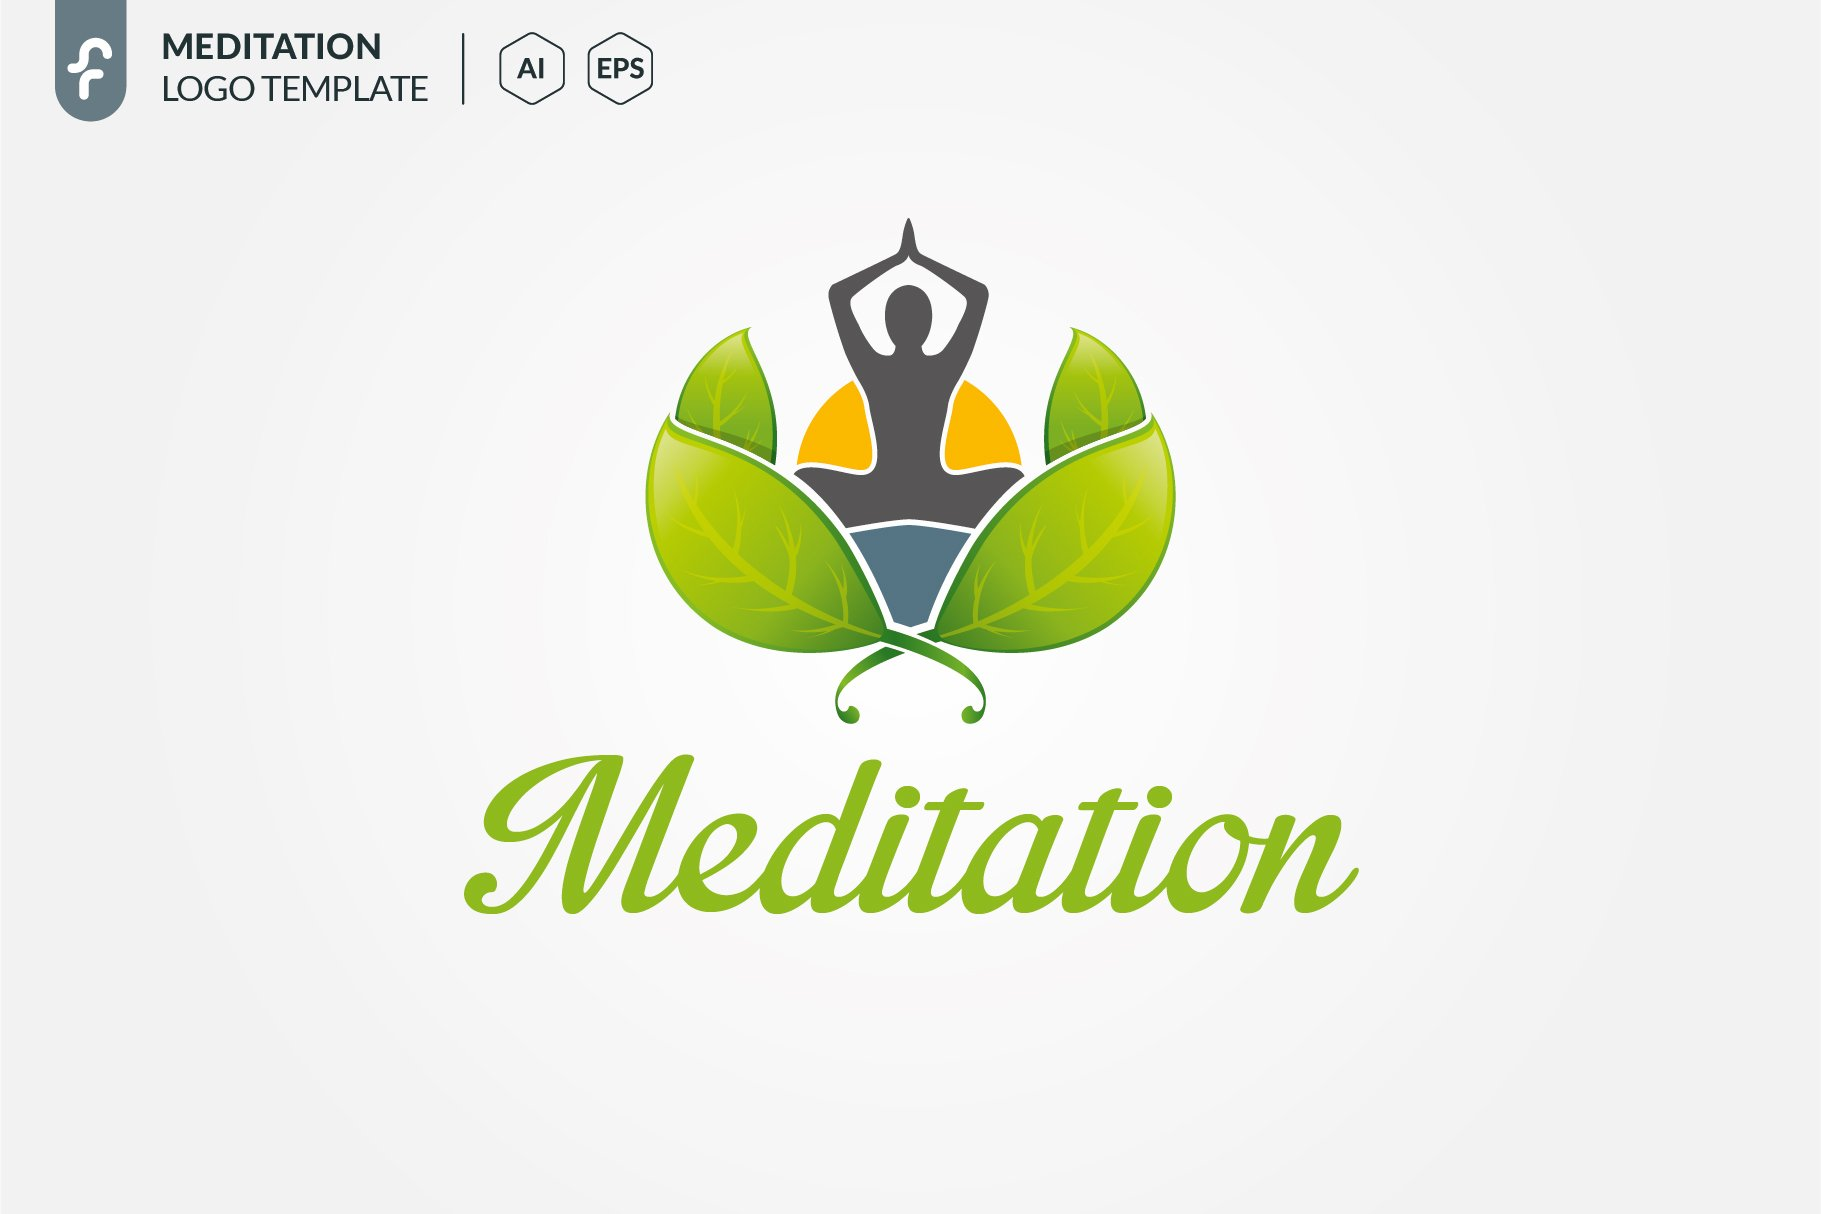 meditation logo creative illustrator templates creative market meditation logo creative illustrator